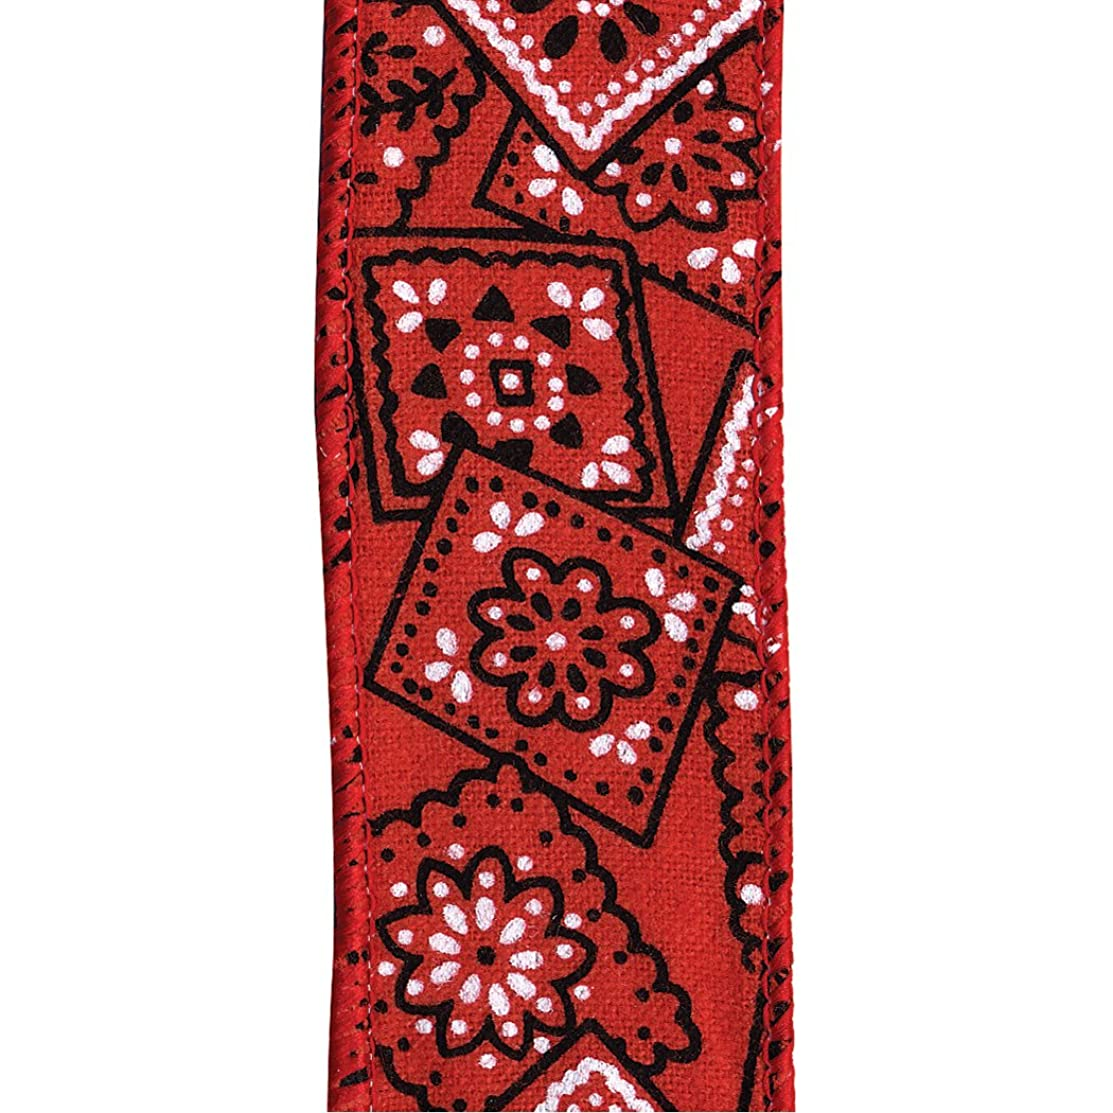 Offray Wired Edge Cowboy Craft Ribbon, 1-1/2-Inch by 25-Yard Spool, Red